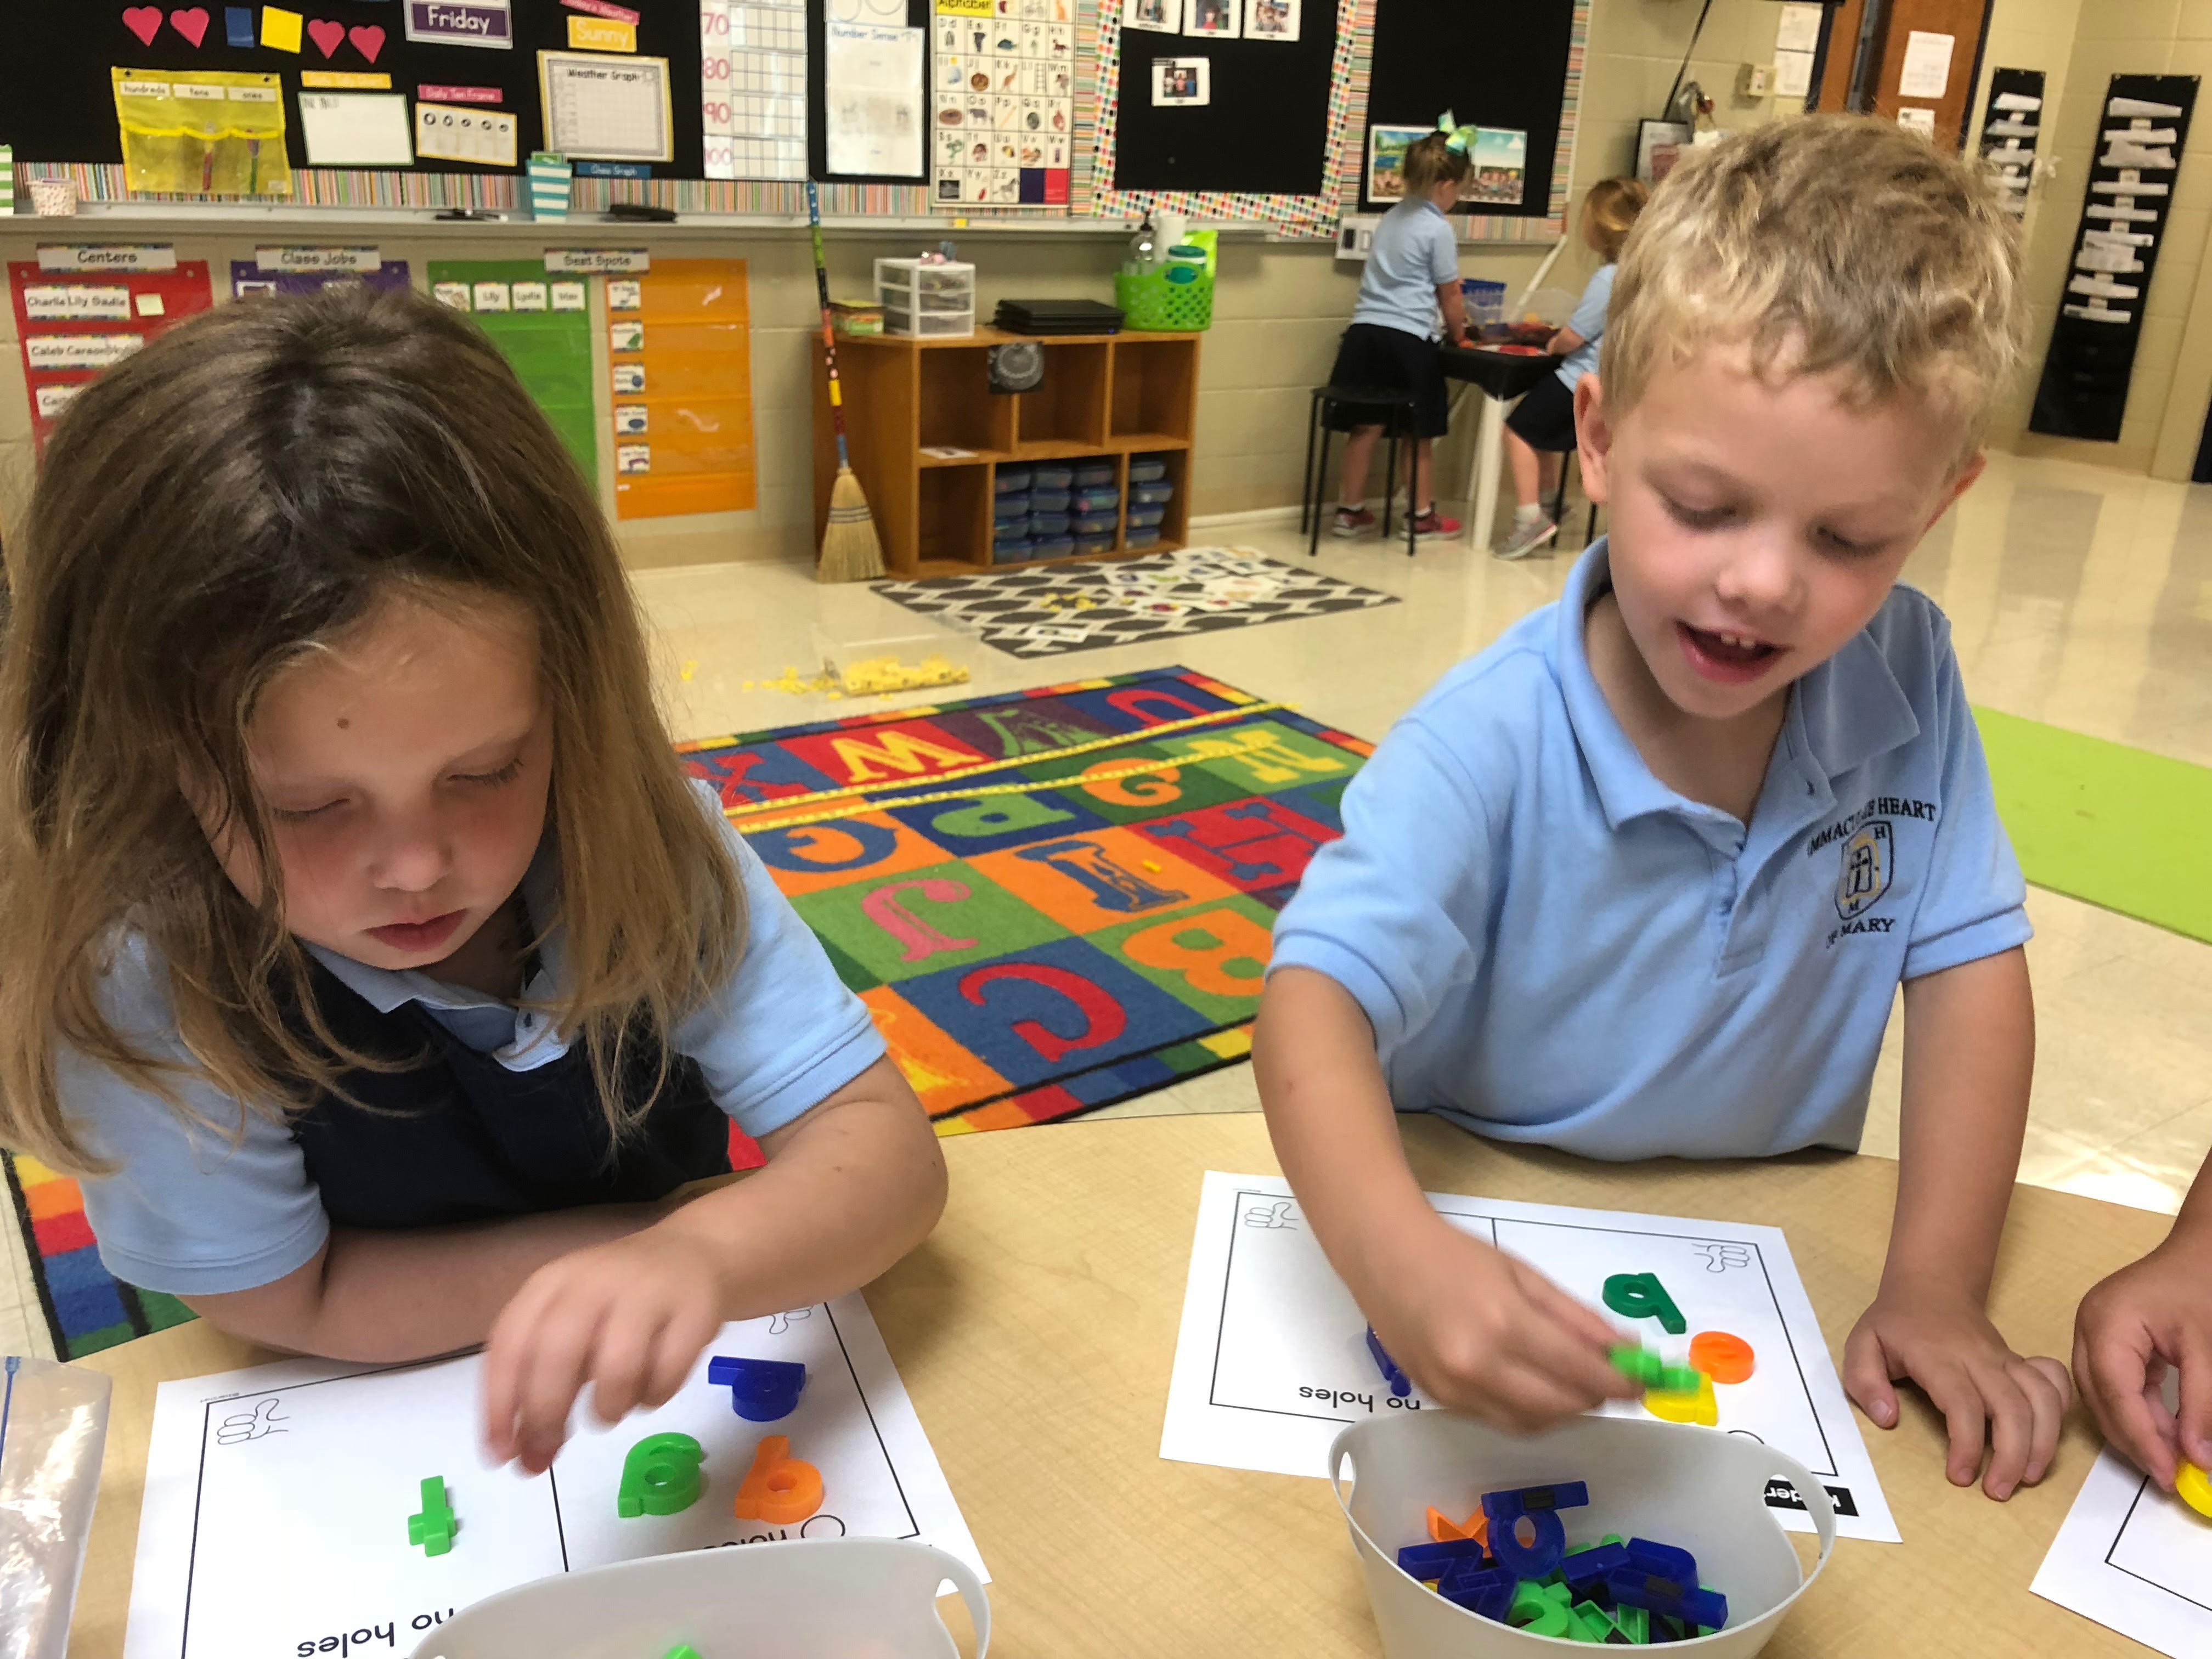 Kids playing with magnetic letters